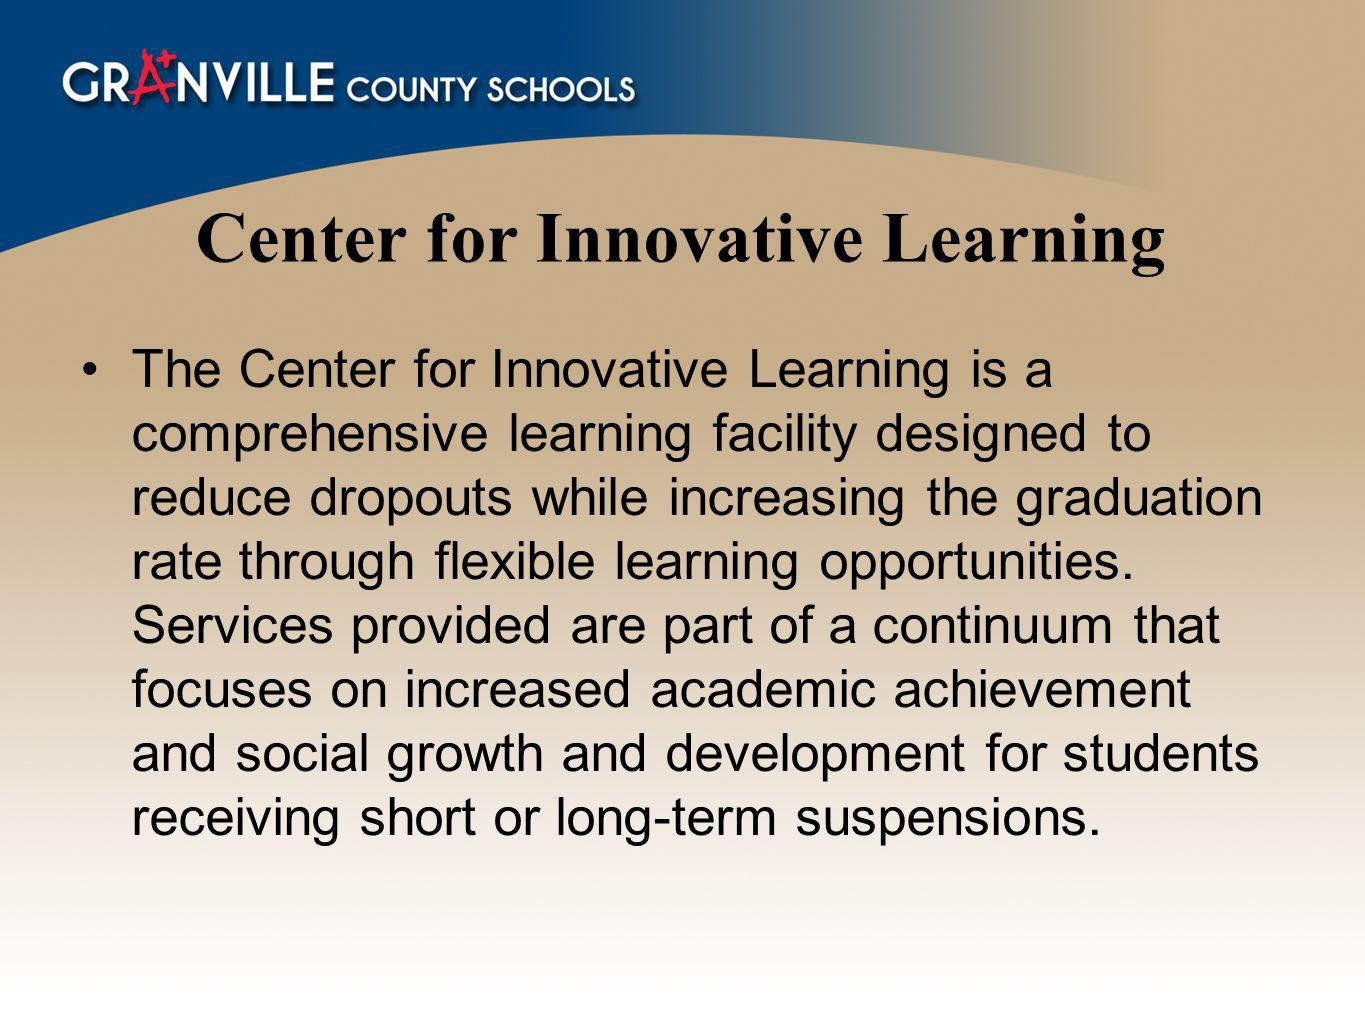 Center for Innovative Learning The Center for Innovative Learning is a comprehensive learning facility designed to reduce dropouts while increasing the graduation rate through flexible learning opportunities.